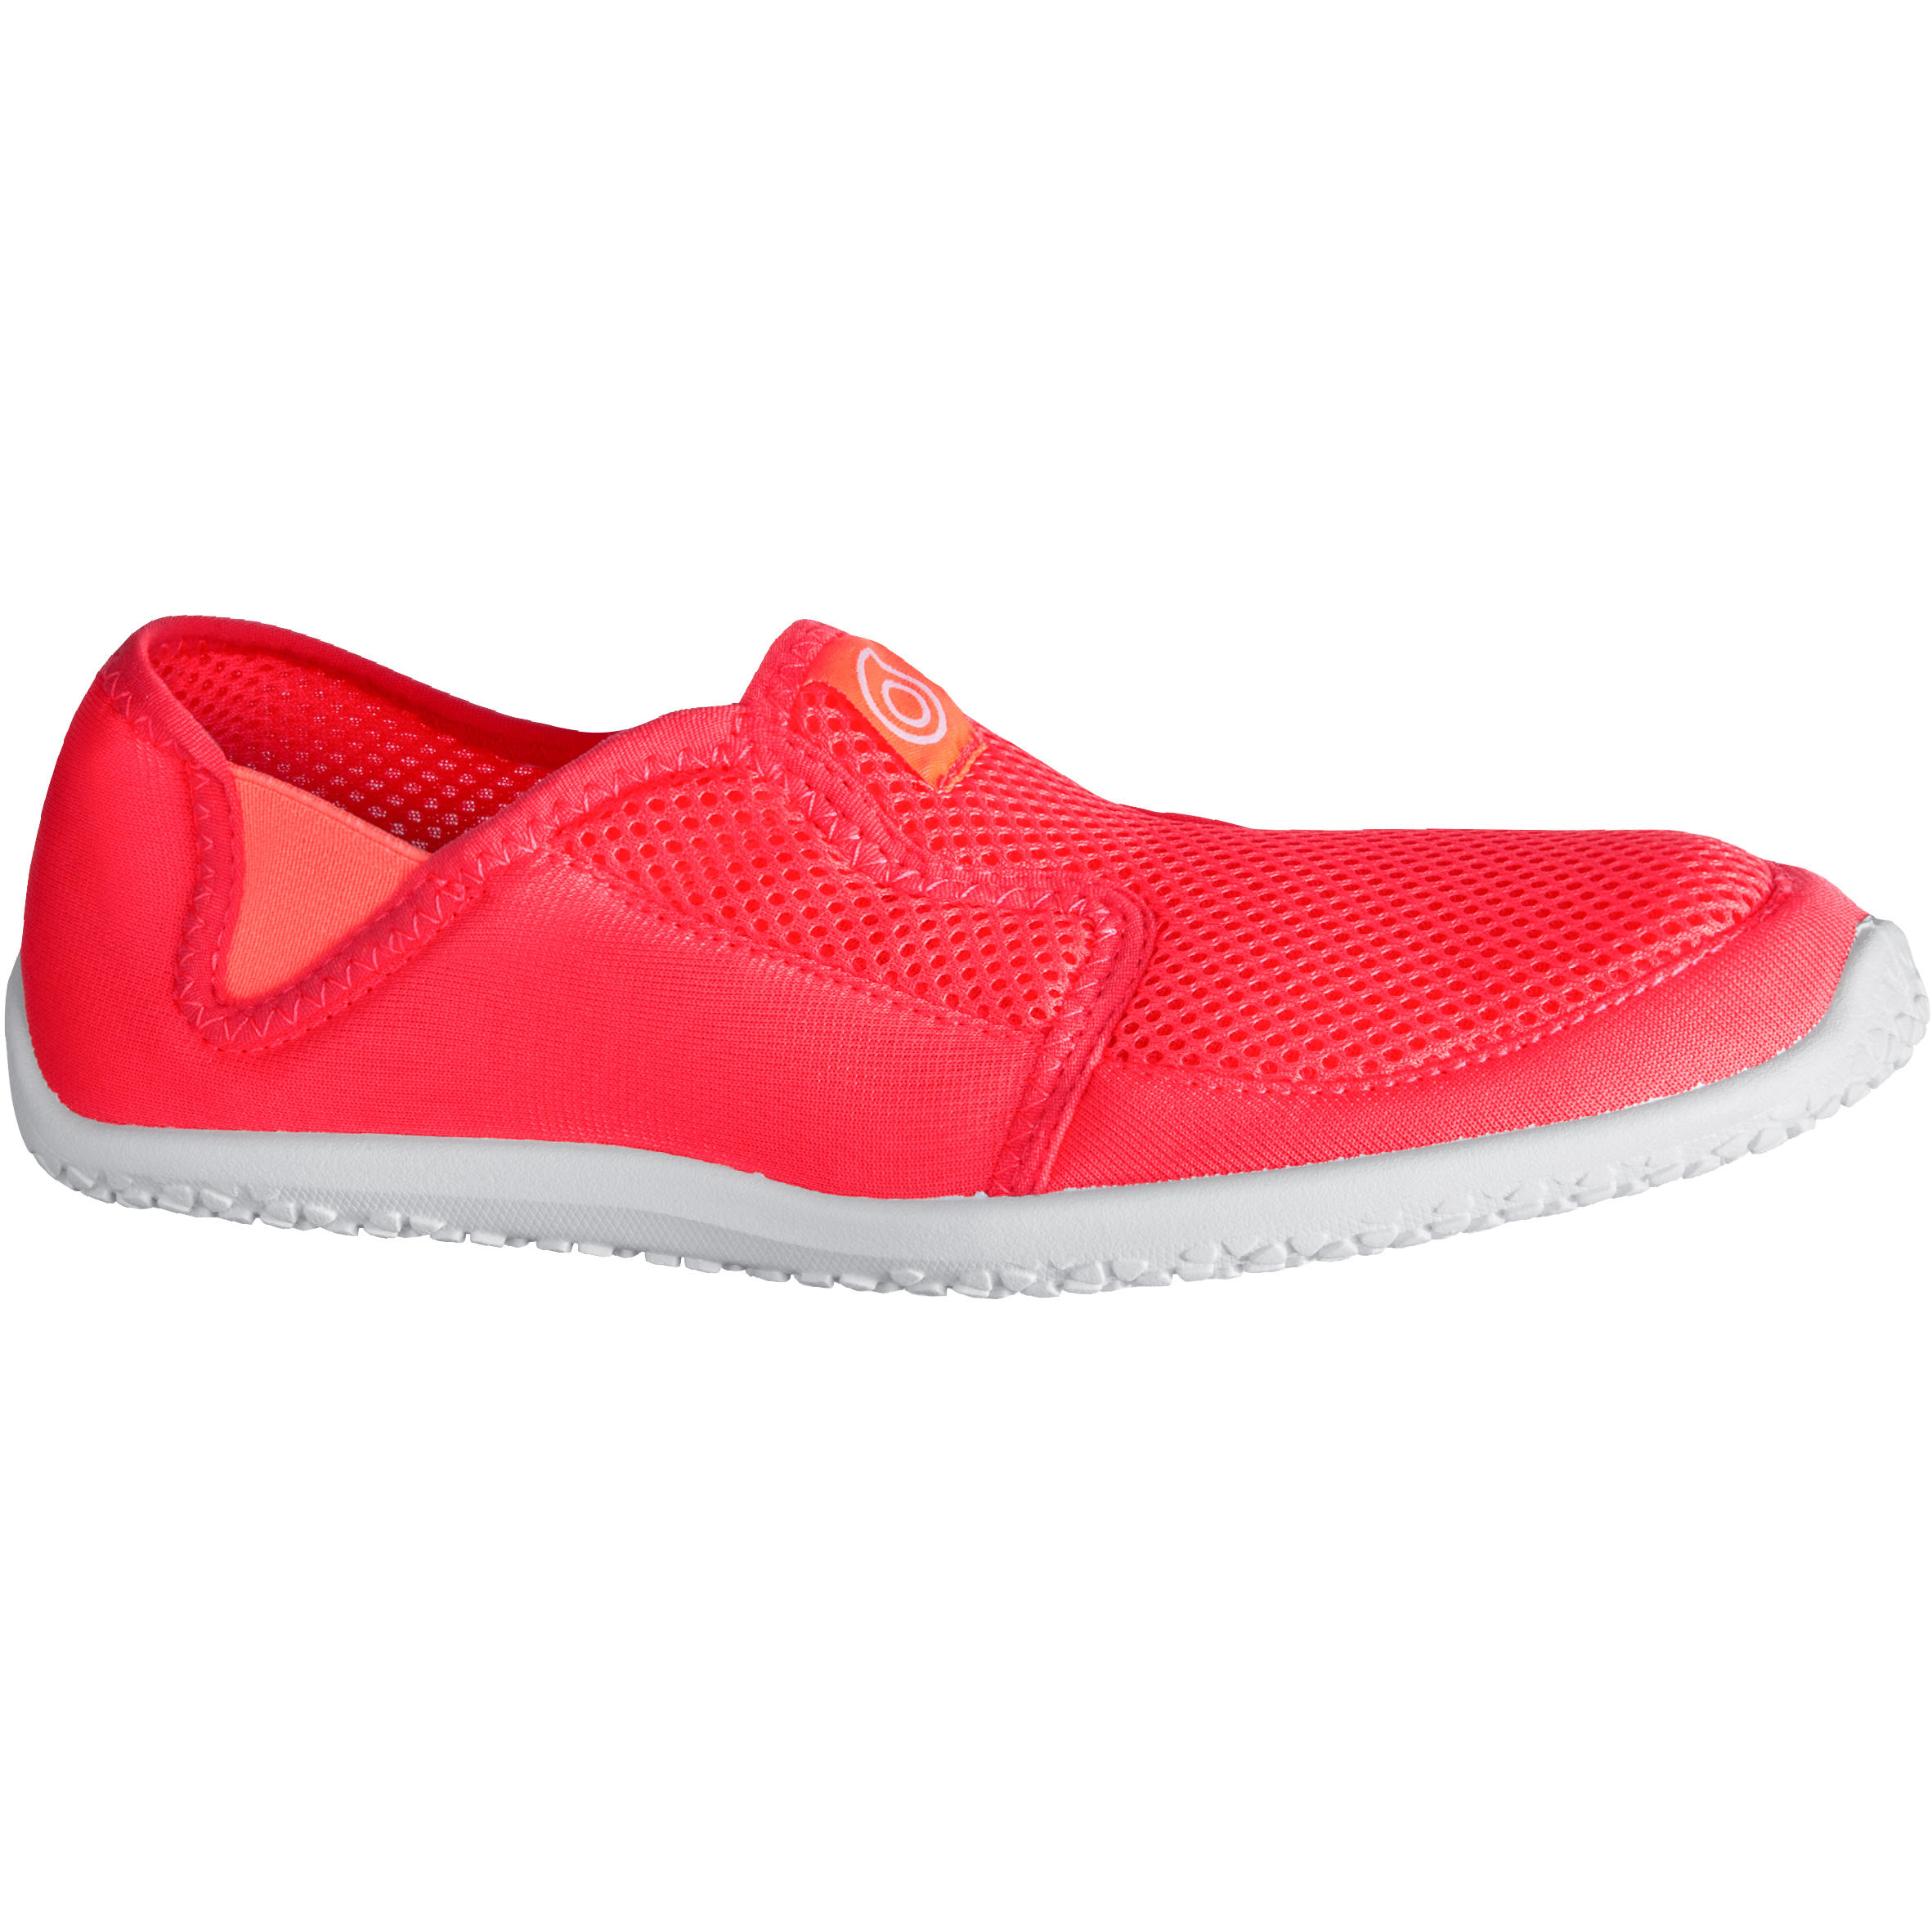 Aquashoes zapatillas acuáticas 120 adulto rosa